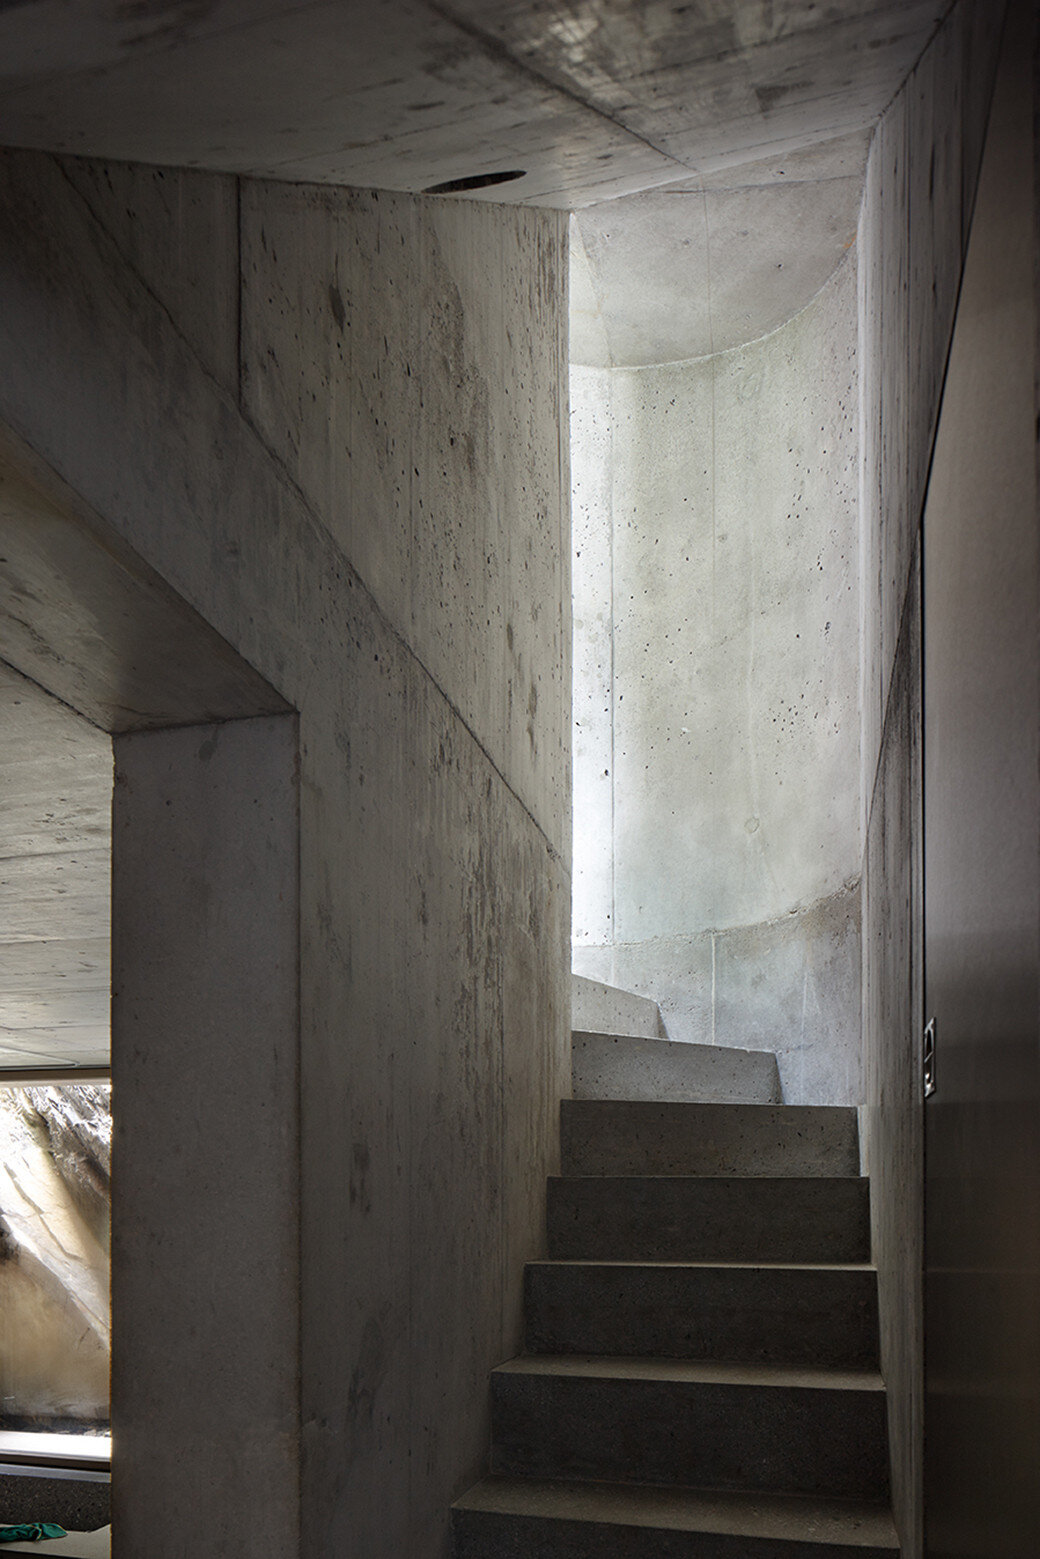 Fascinating concrete cabin in the Swiss Alps by German architecture studio Nickisch Sano Walder Architekten (5)